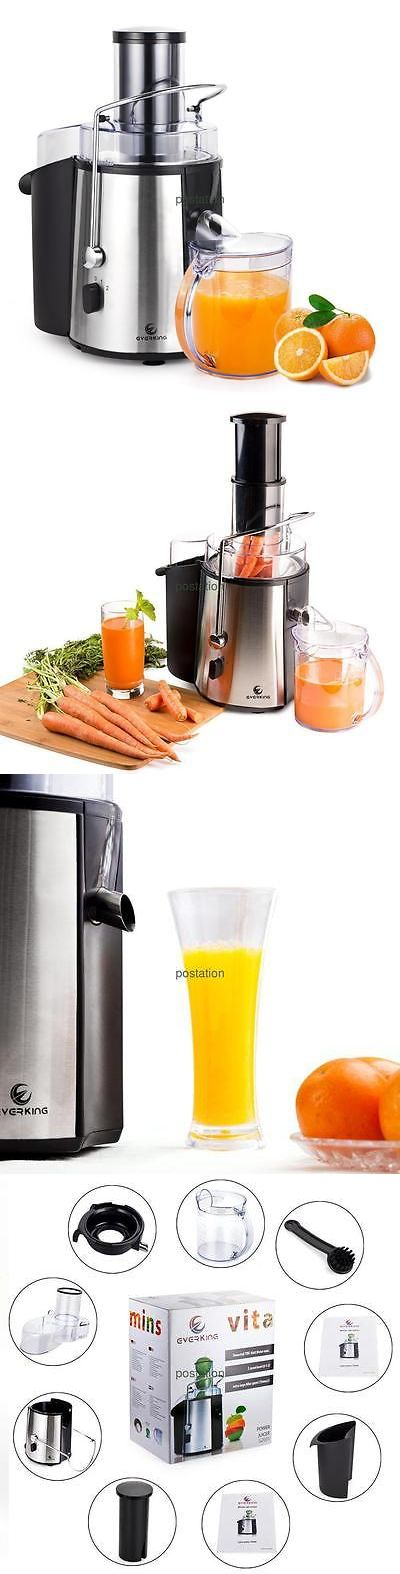 attractive Orange Small Kitchen Appliances #6: Small Kitchen Appliances: Juice Extractor Fruit Juicer Vegetable Stainless  Steel Citrus Machine High Power BUY